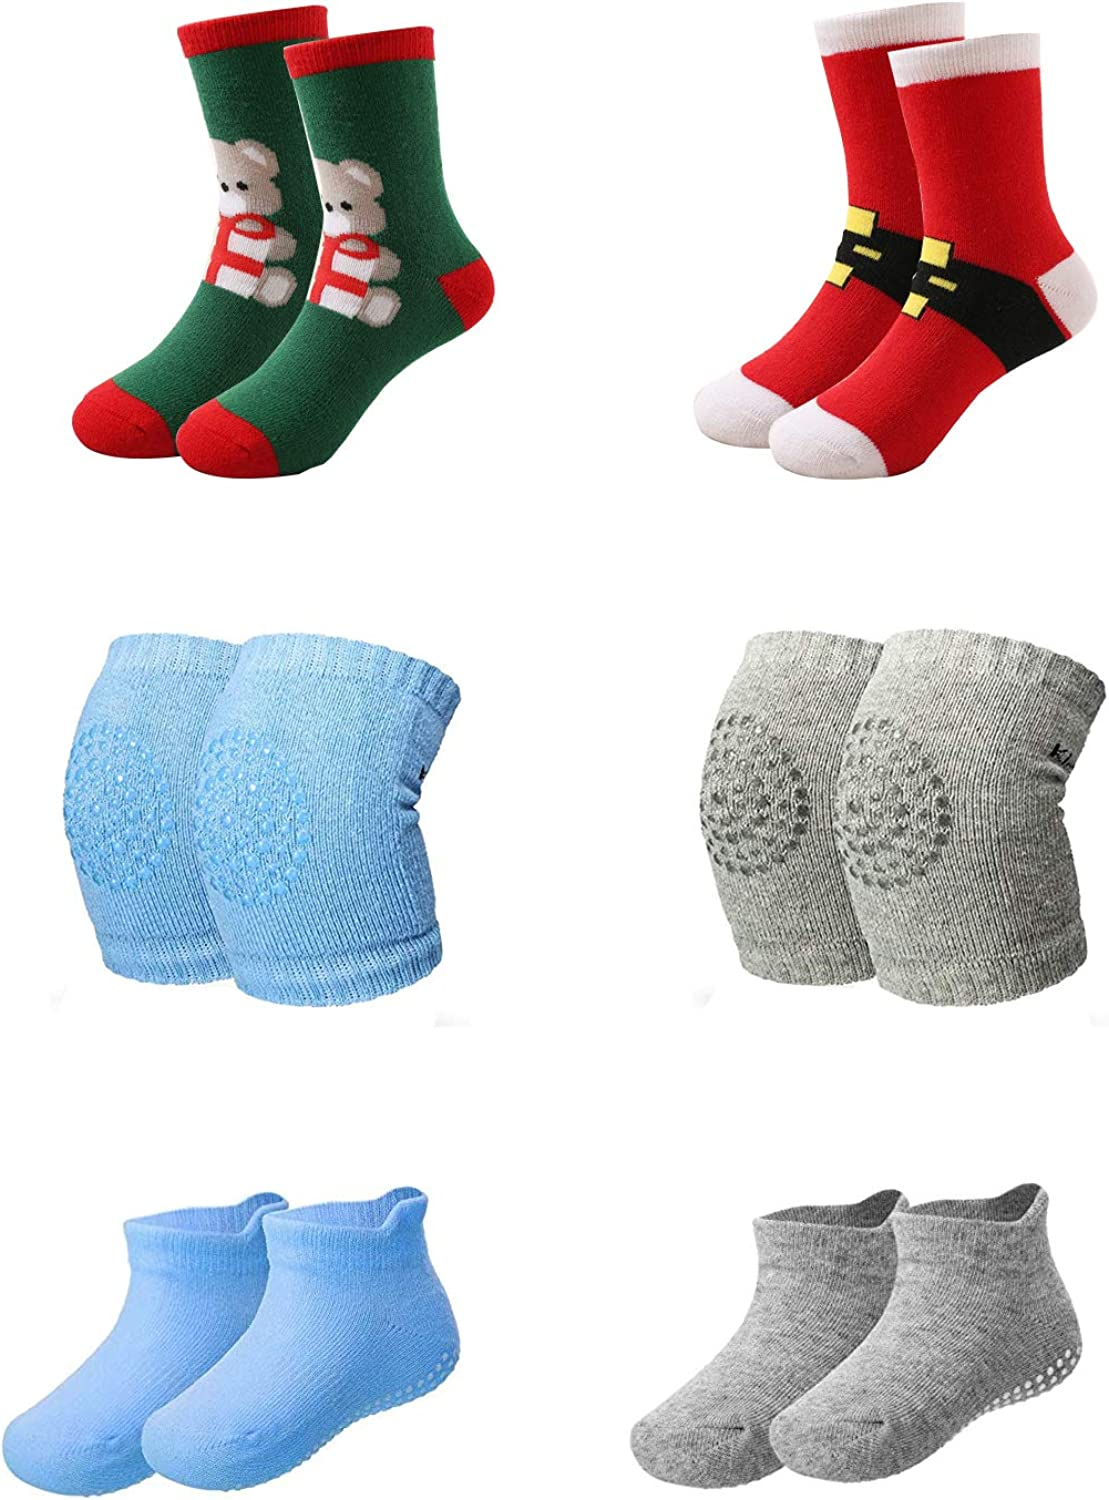 Baby Non Slip Grip Ankle Socks with Non Skid Soles with 2 Pairs Christmas Socks,2 pairs Anti Slip Leg Warmers Kids Kneepads